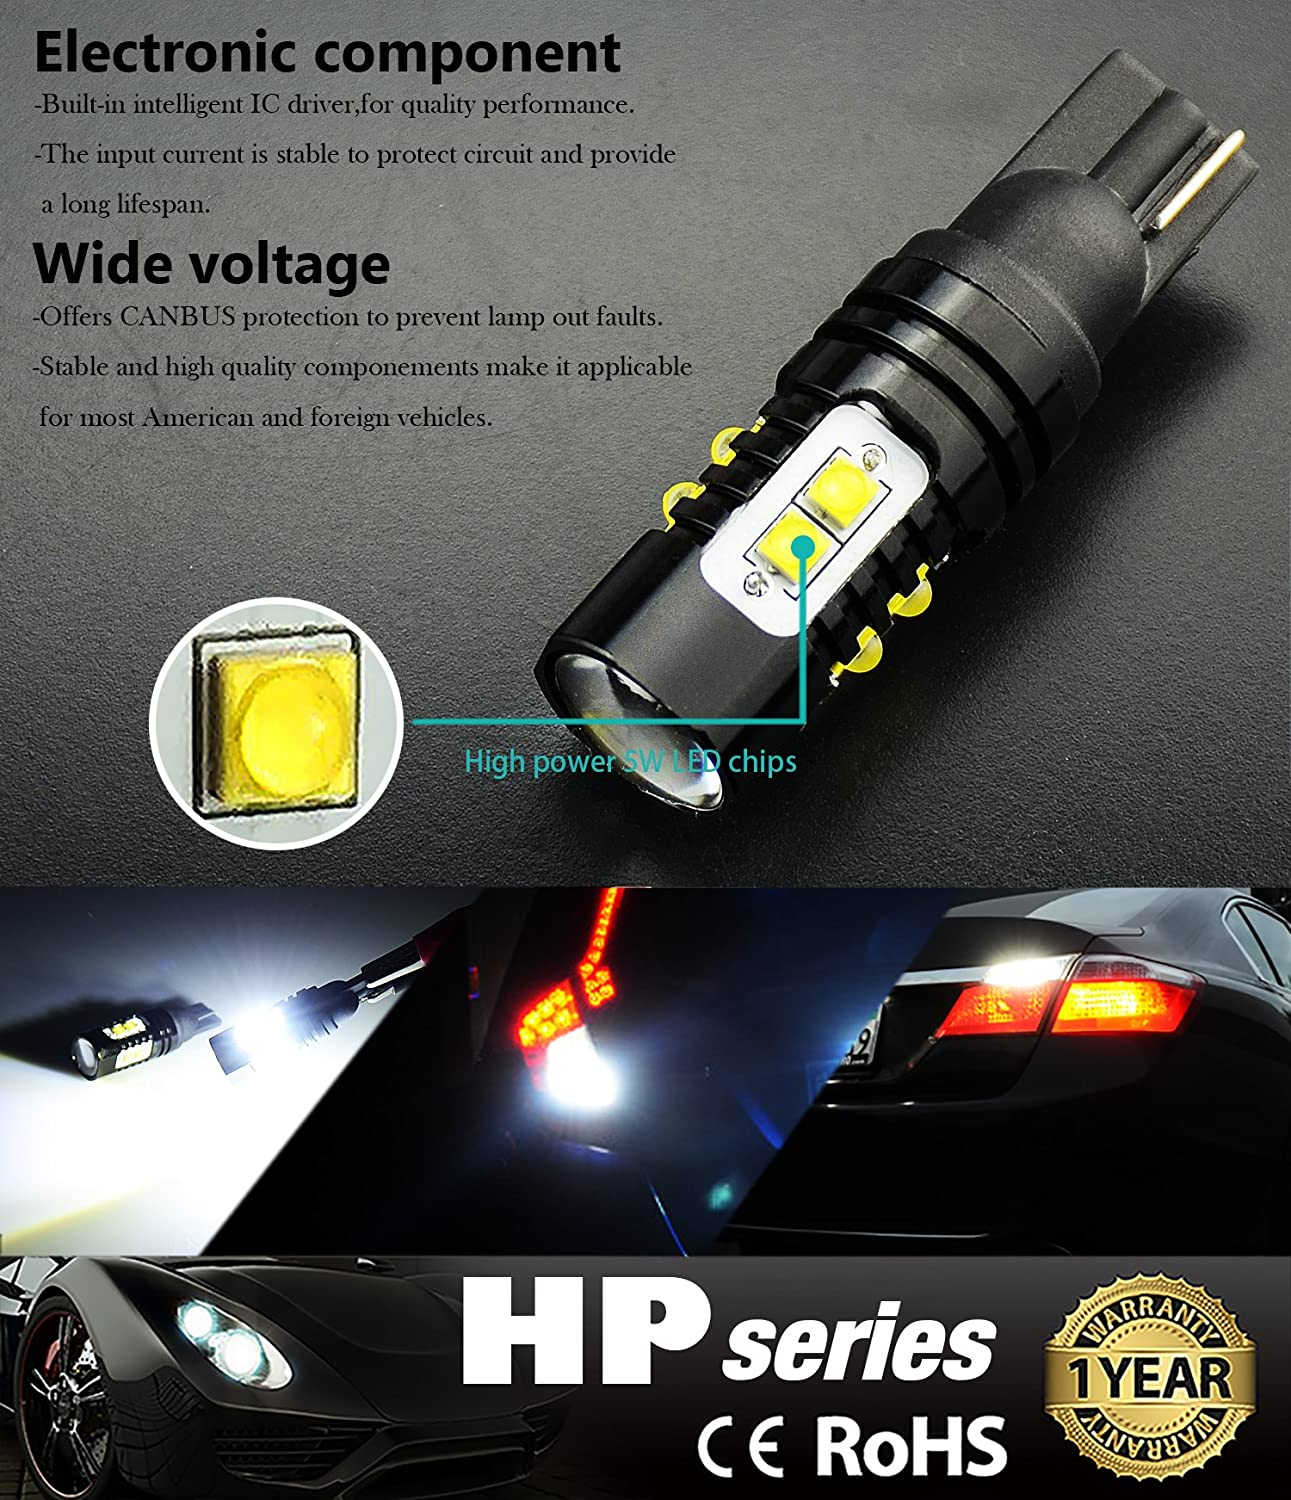 Jdm Astar Extremely Bright Max 50w High Power 912 921 How To Build Courtesy Light Led Bulb For Backup Reverse Lights Xenon White Automotive